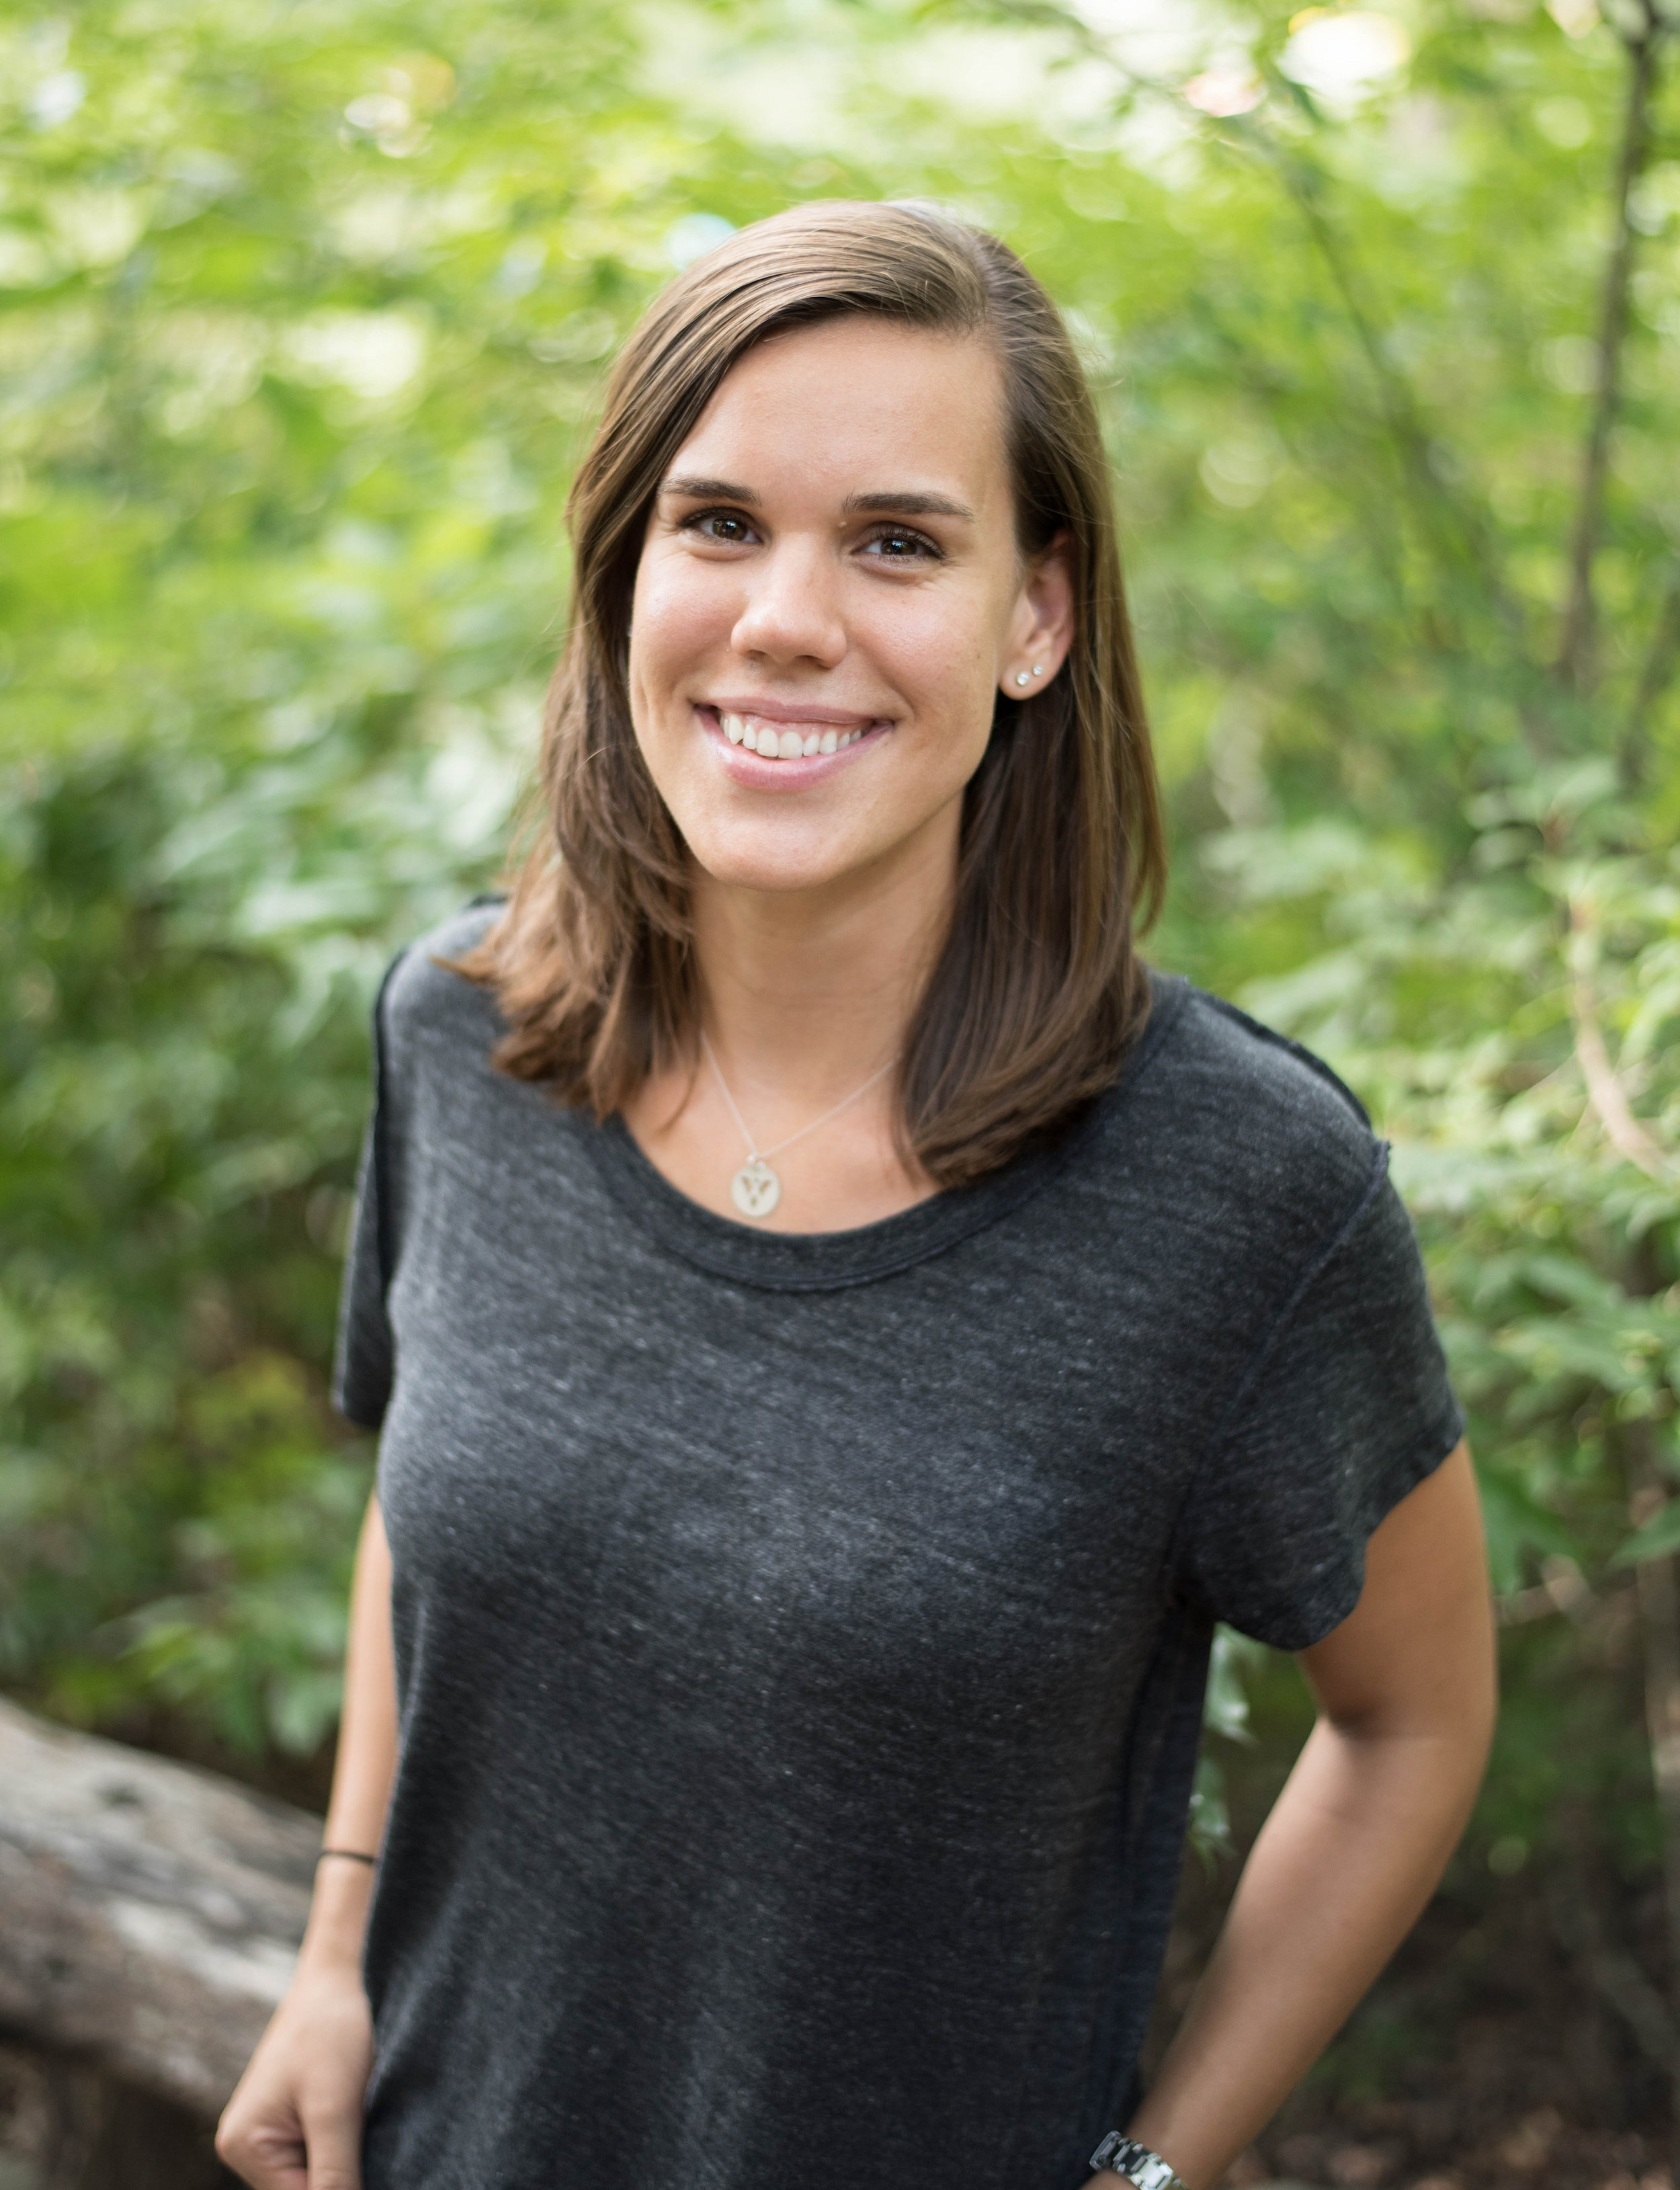 Student Life Coordinator  Liz is initially from Sacramento, CA, but grew up in Greenville, SC. She has a BA in Studio Arts with a concentration in Education from Anderson University. Liz taught middle and high school art at Shannon Forest Christian School for three years before moving to Africa to teach 6th grade as well as middle school art at American Christian Academy in Ibadan, Nigeria. After returning to the United States, Liz worked in Charleston for a year before joining the VoX team in August 2015.